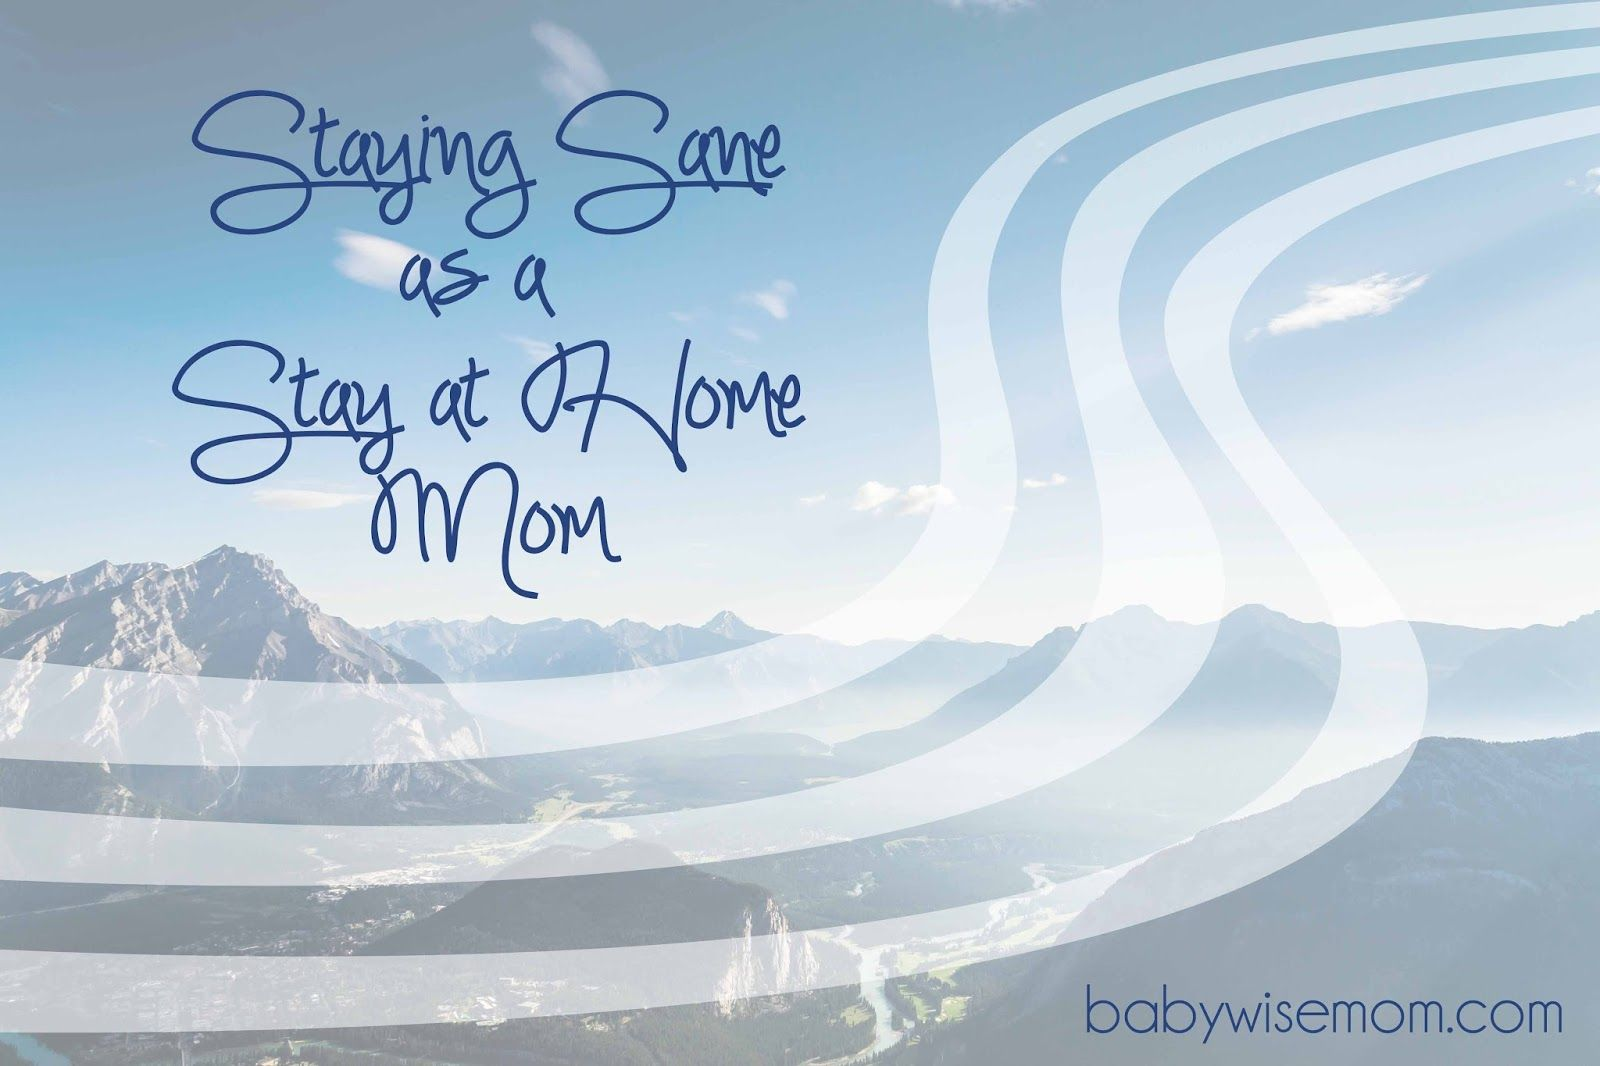 Simple steps to help keep your sanity. Chronicles of a Babywise Mom: Staying Sane As A SAHM